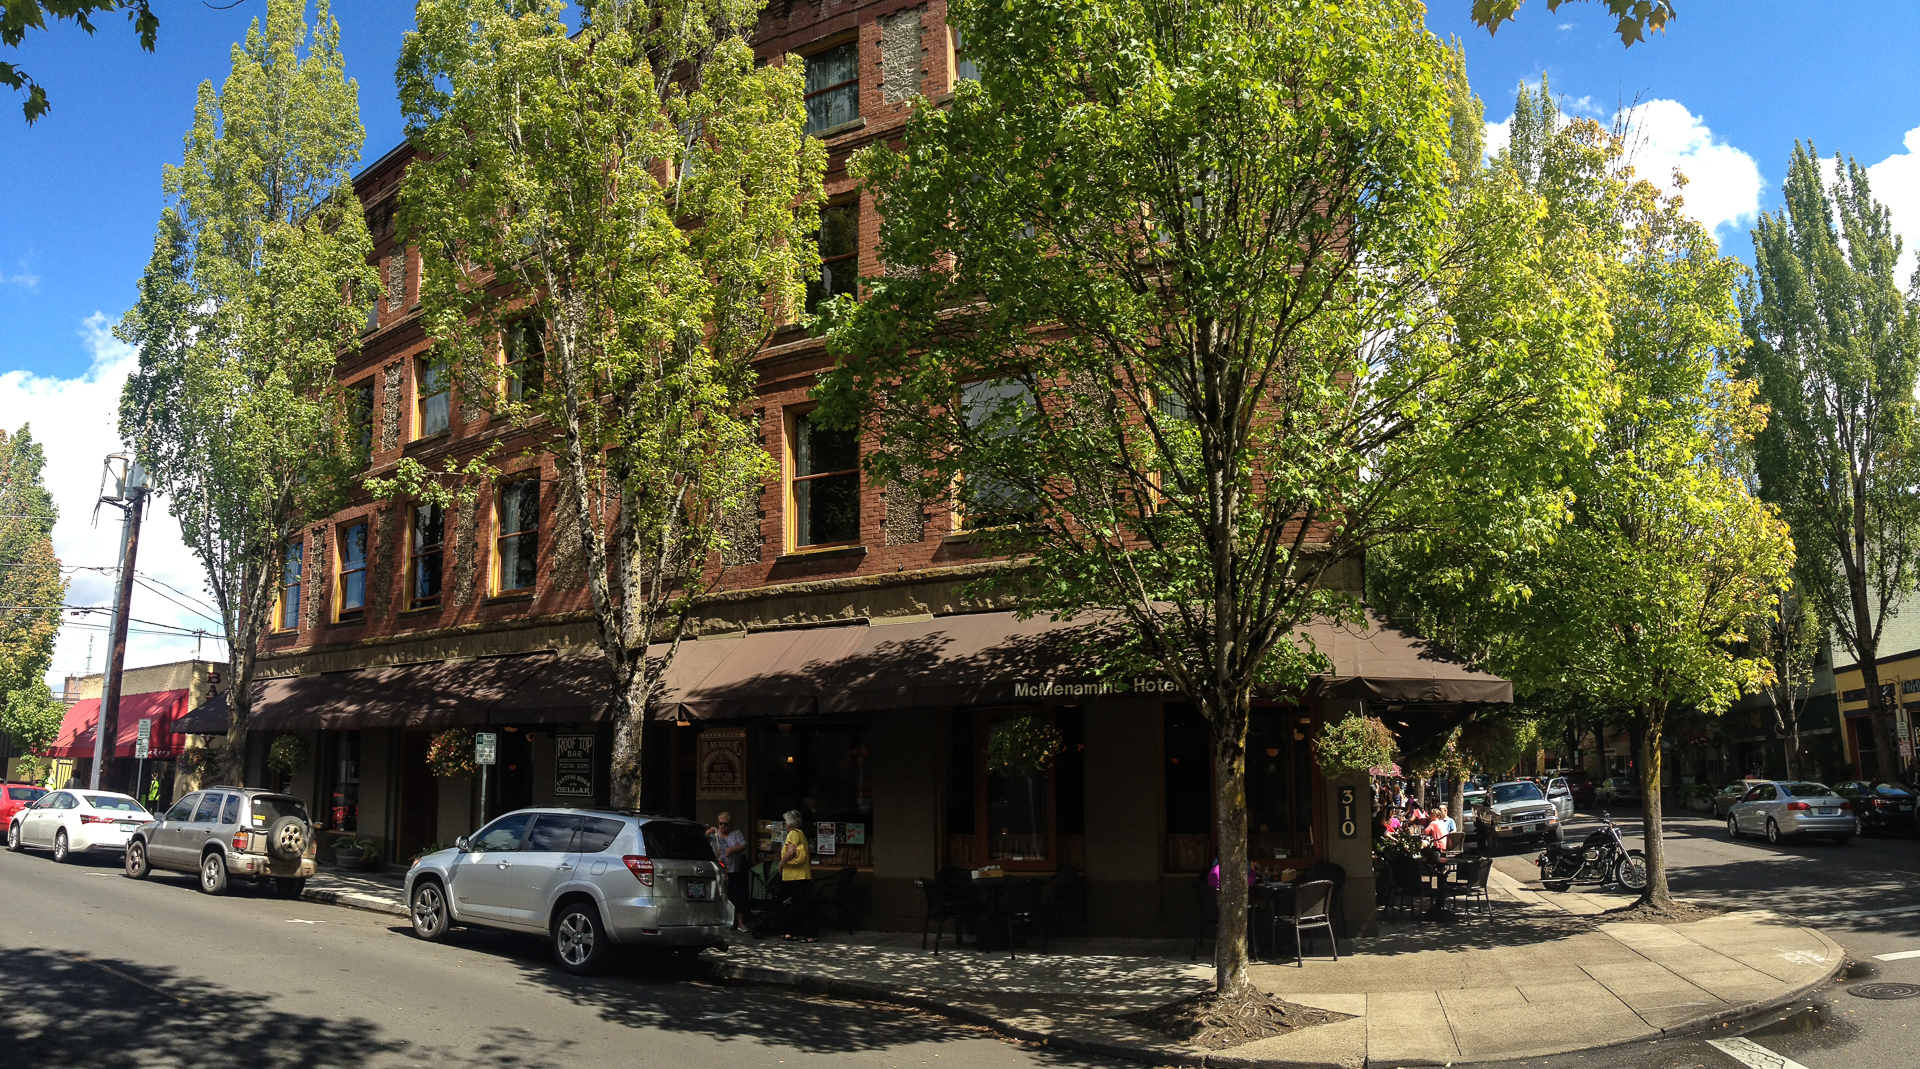 The classic Hotel Oregon in McMinnville.